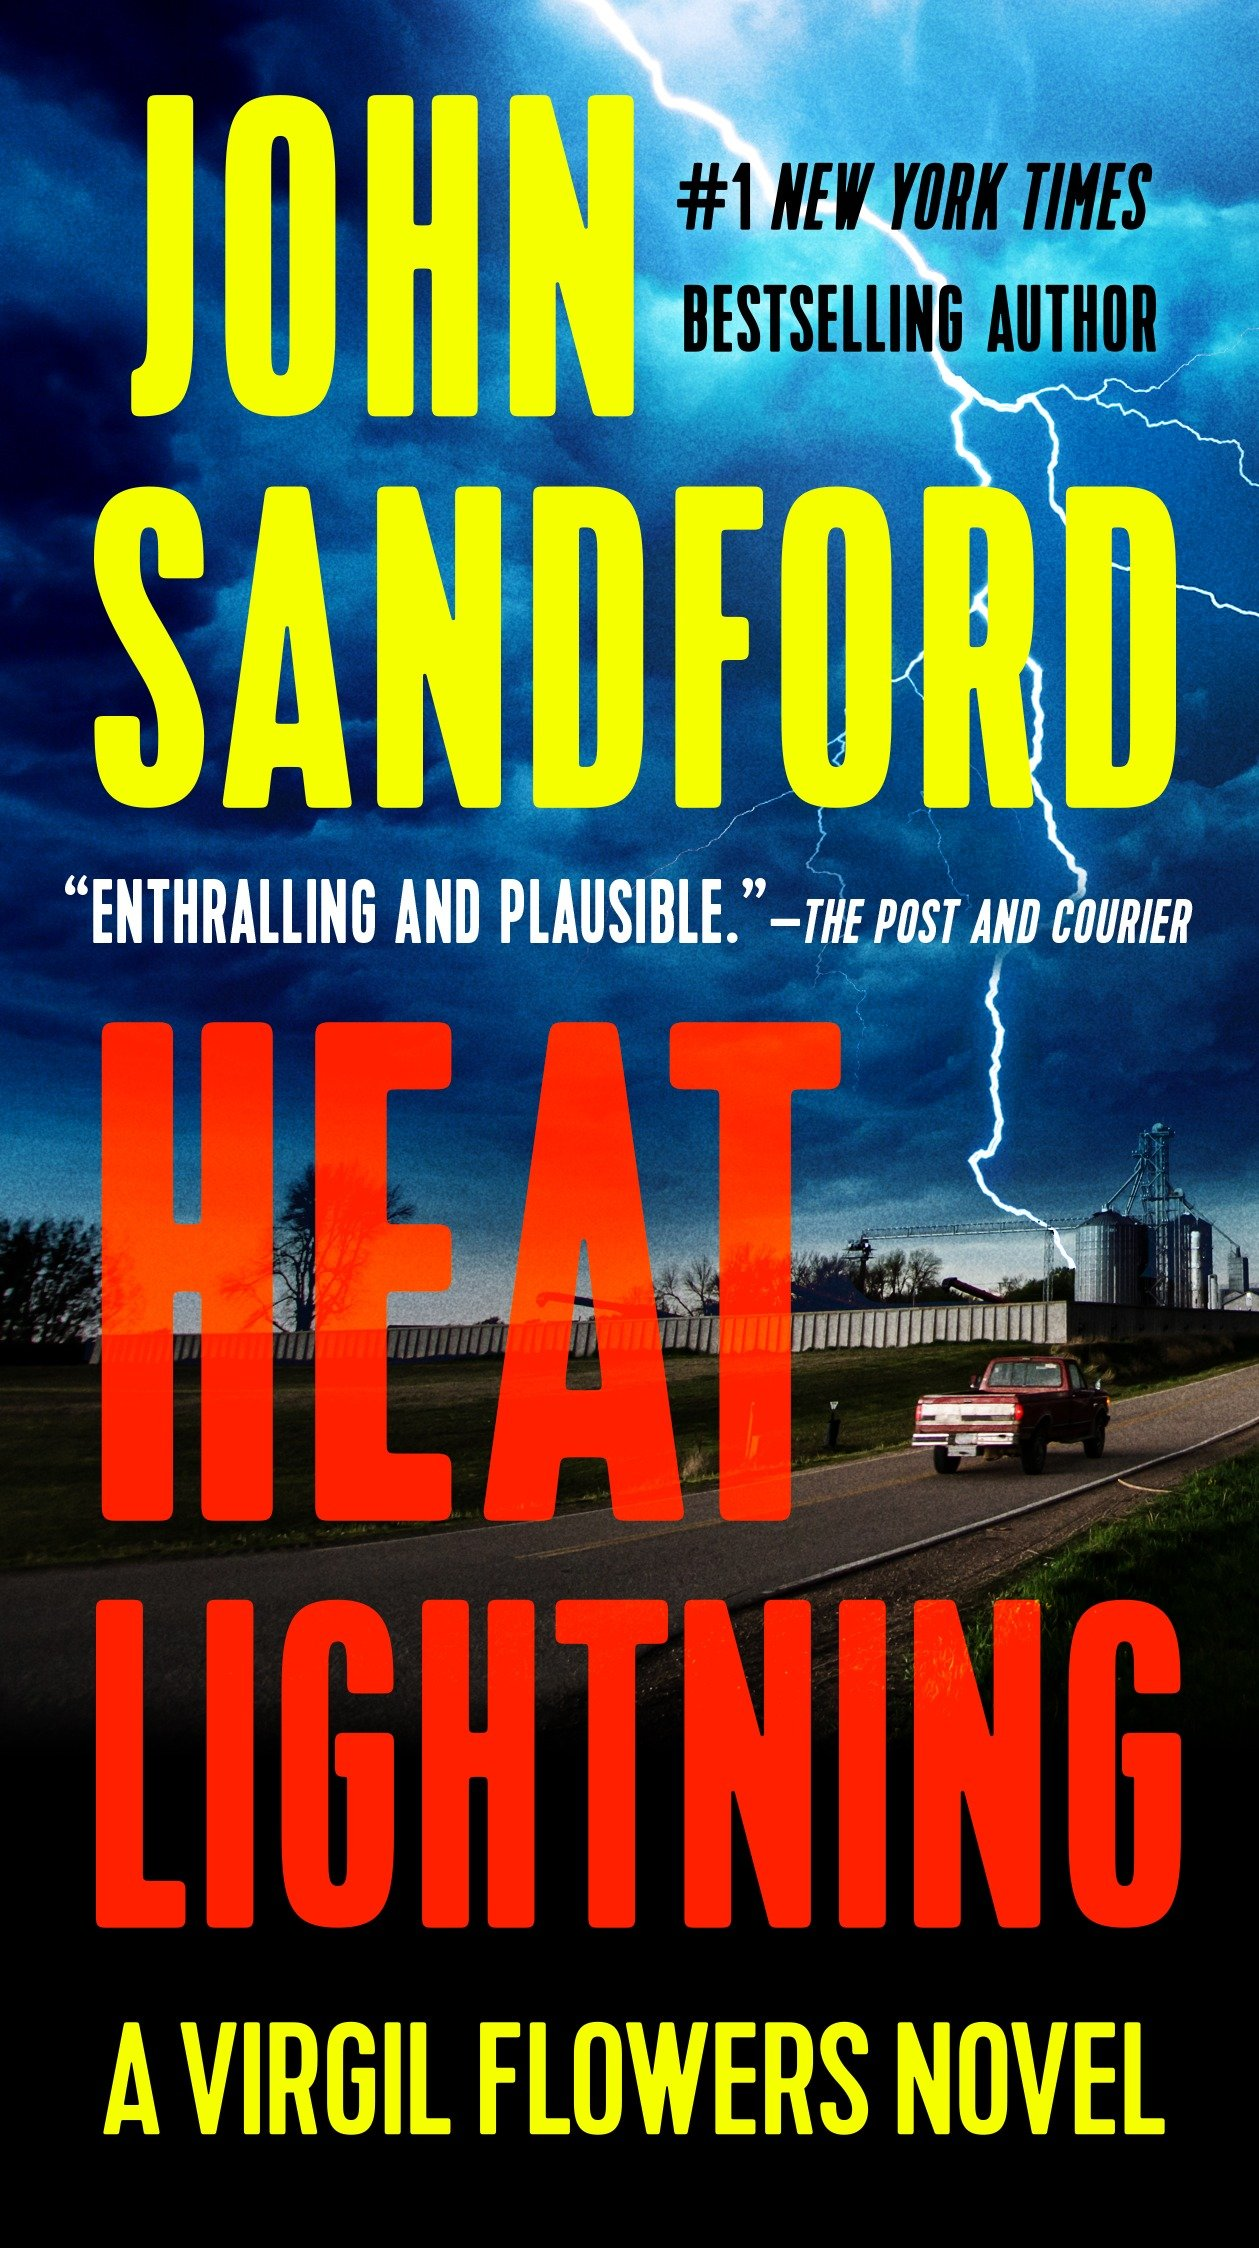 Heat lightning cover image